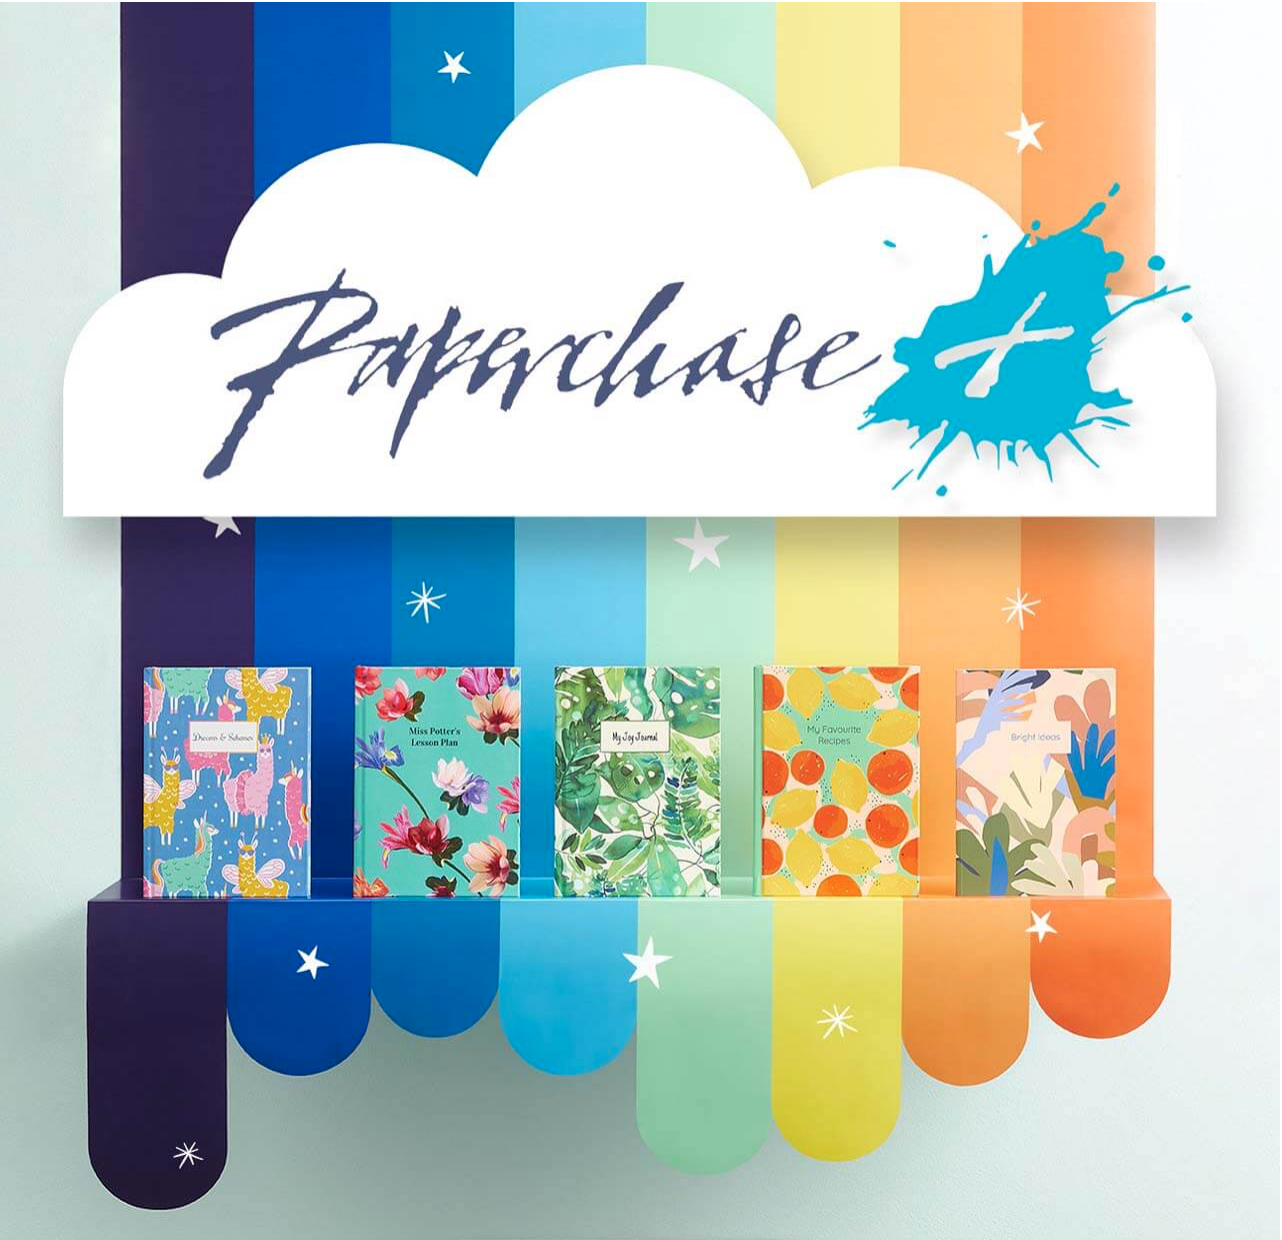 Above: Under the new ownership, Paperchase is continuing to promote its latest ranges and consumer offers.